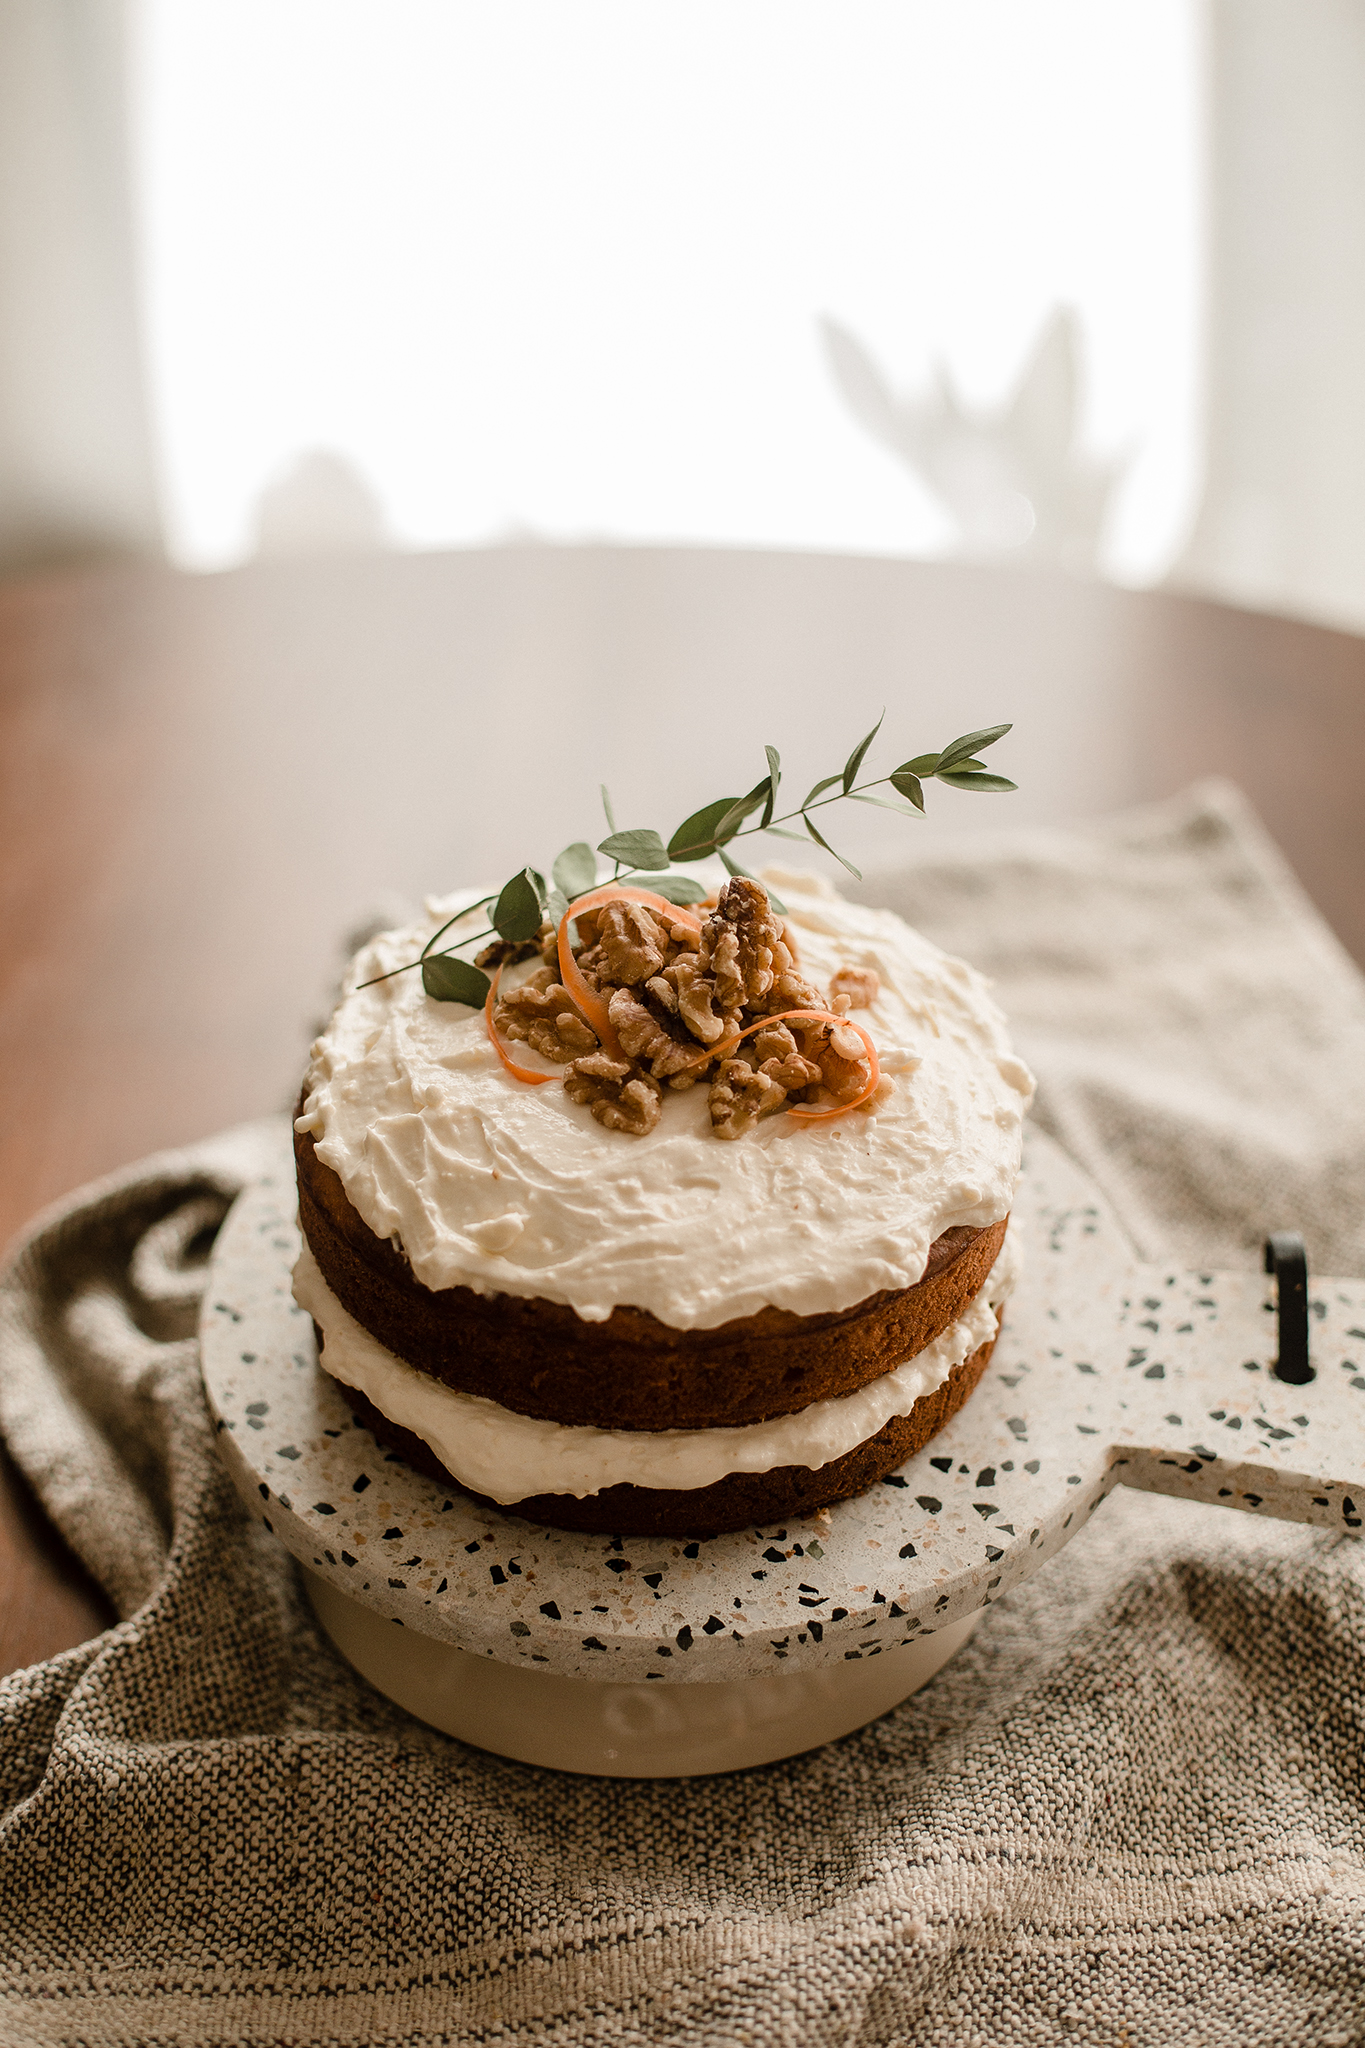 Homemade Moist Carrot Cake with Cream Cheese Frosting